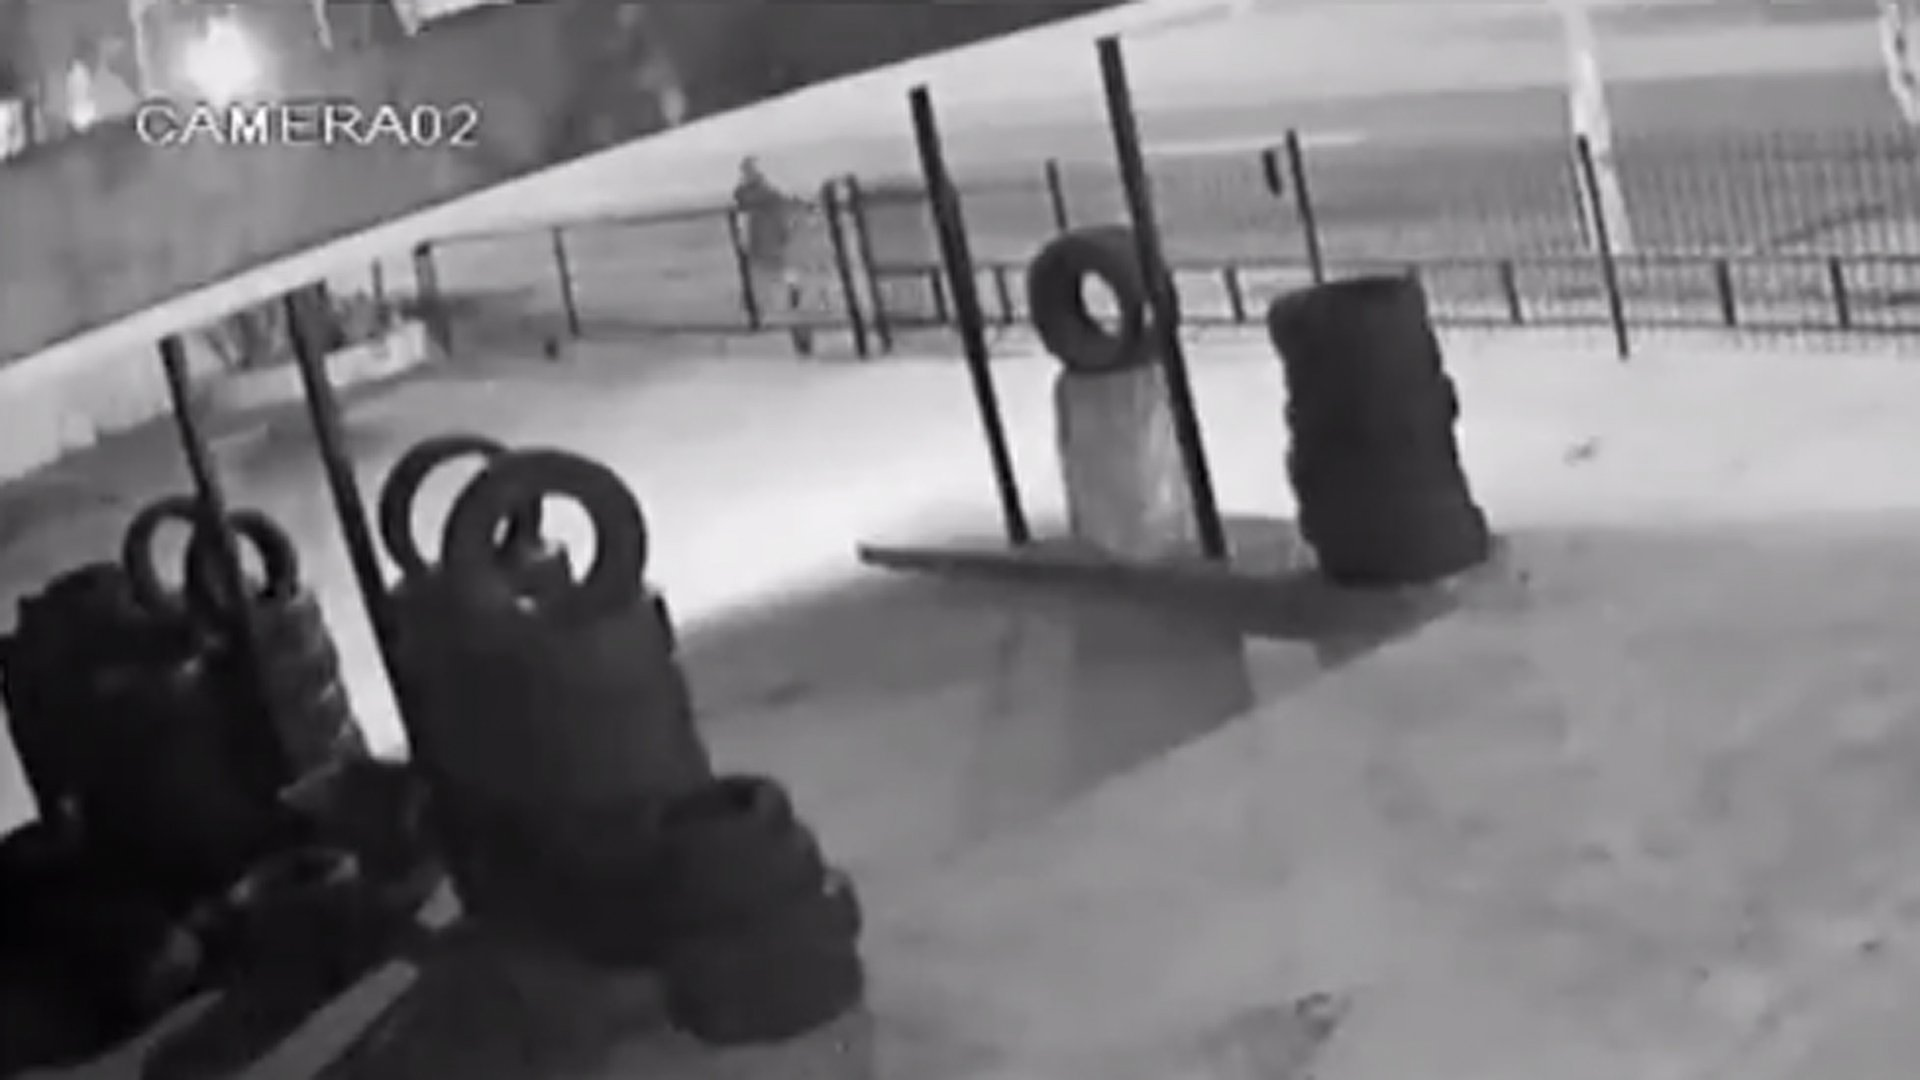 Colton police on Jan. 9, 2020, released surveillance video in hopes of identifying a possible witness to a fatal shooting last April.